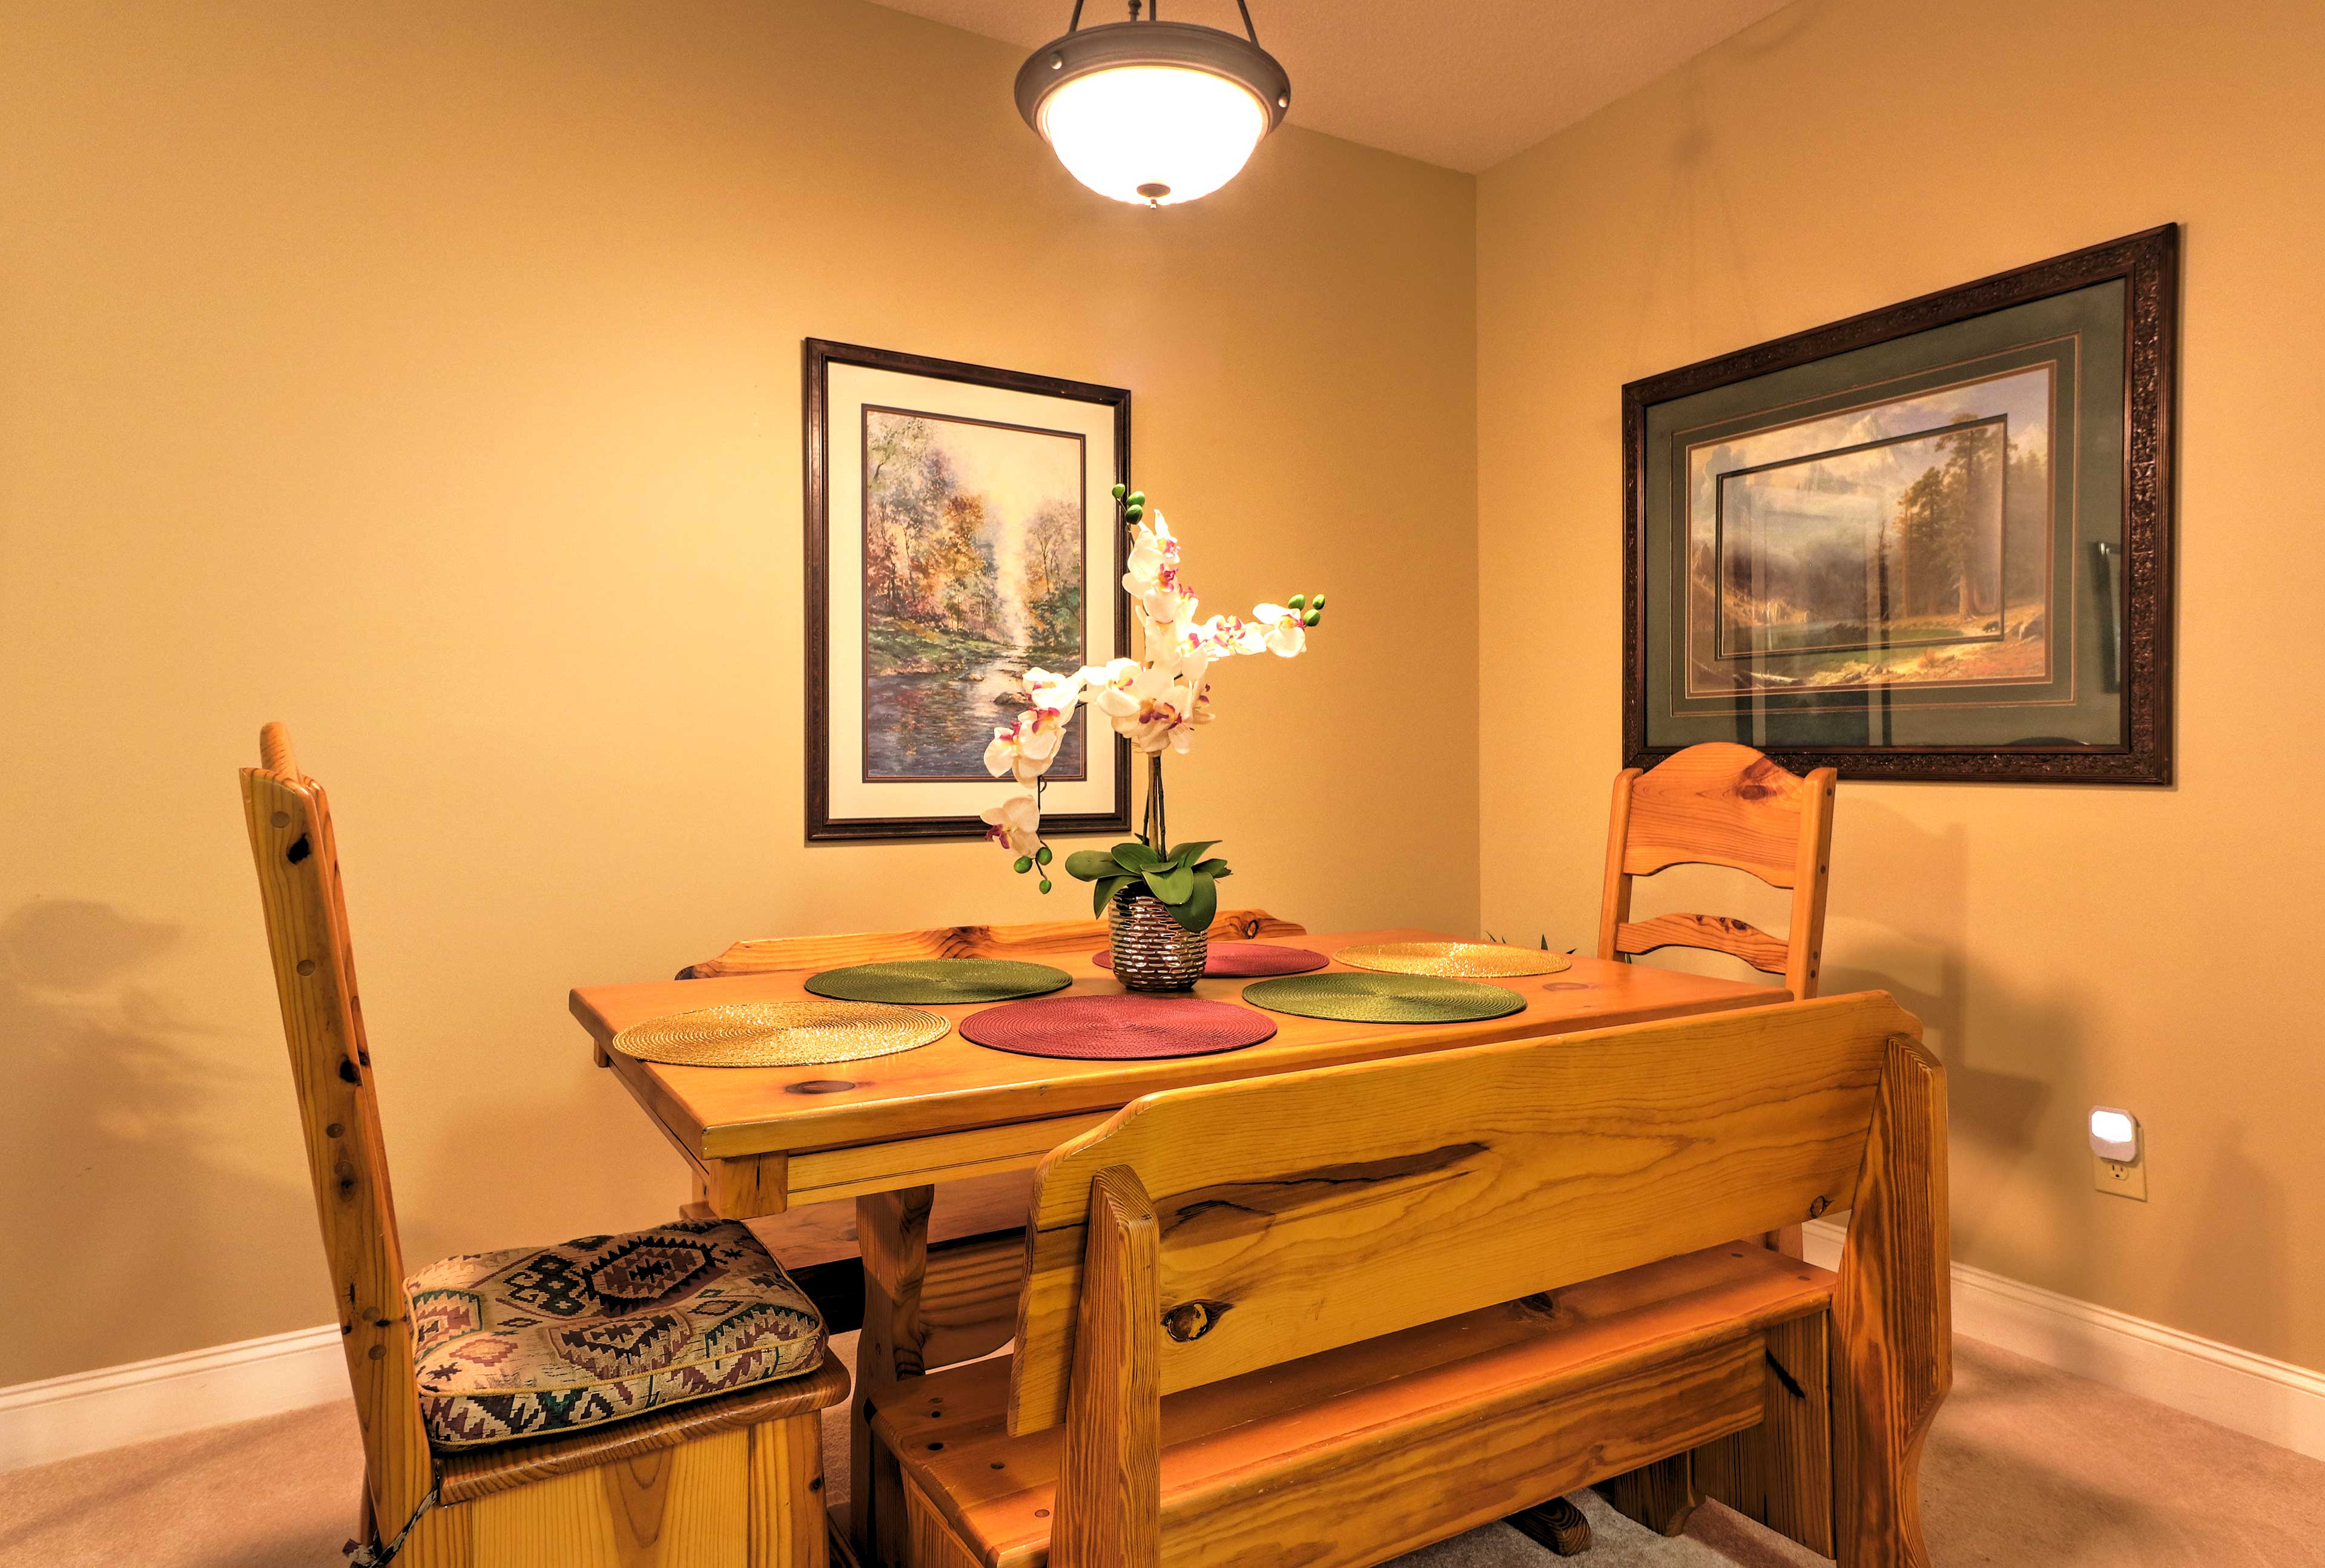 Enjoy a delicious family dinner at the rustic dining table with seating for 6.